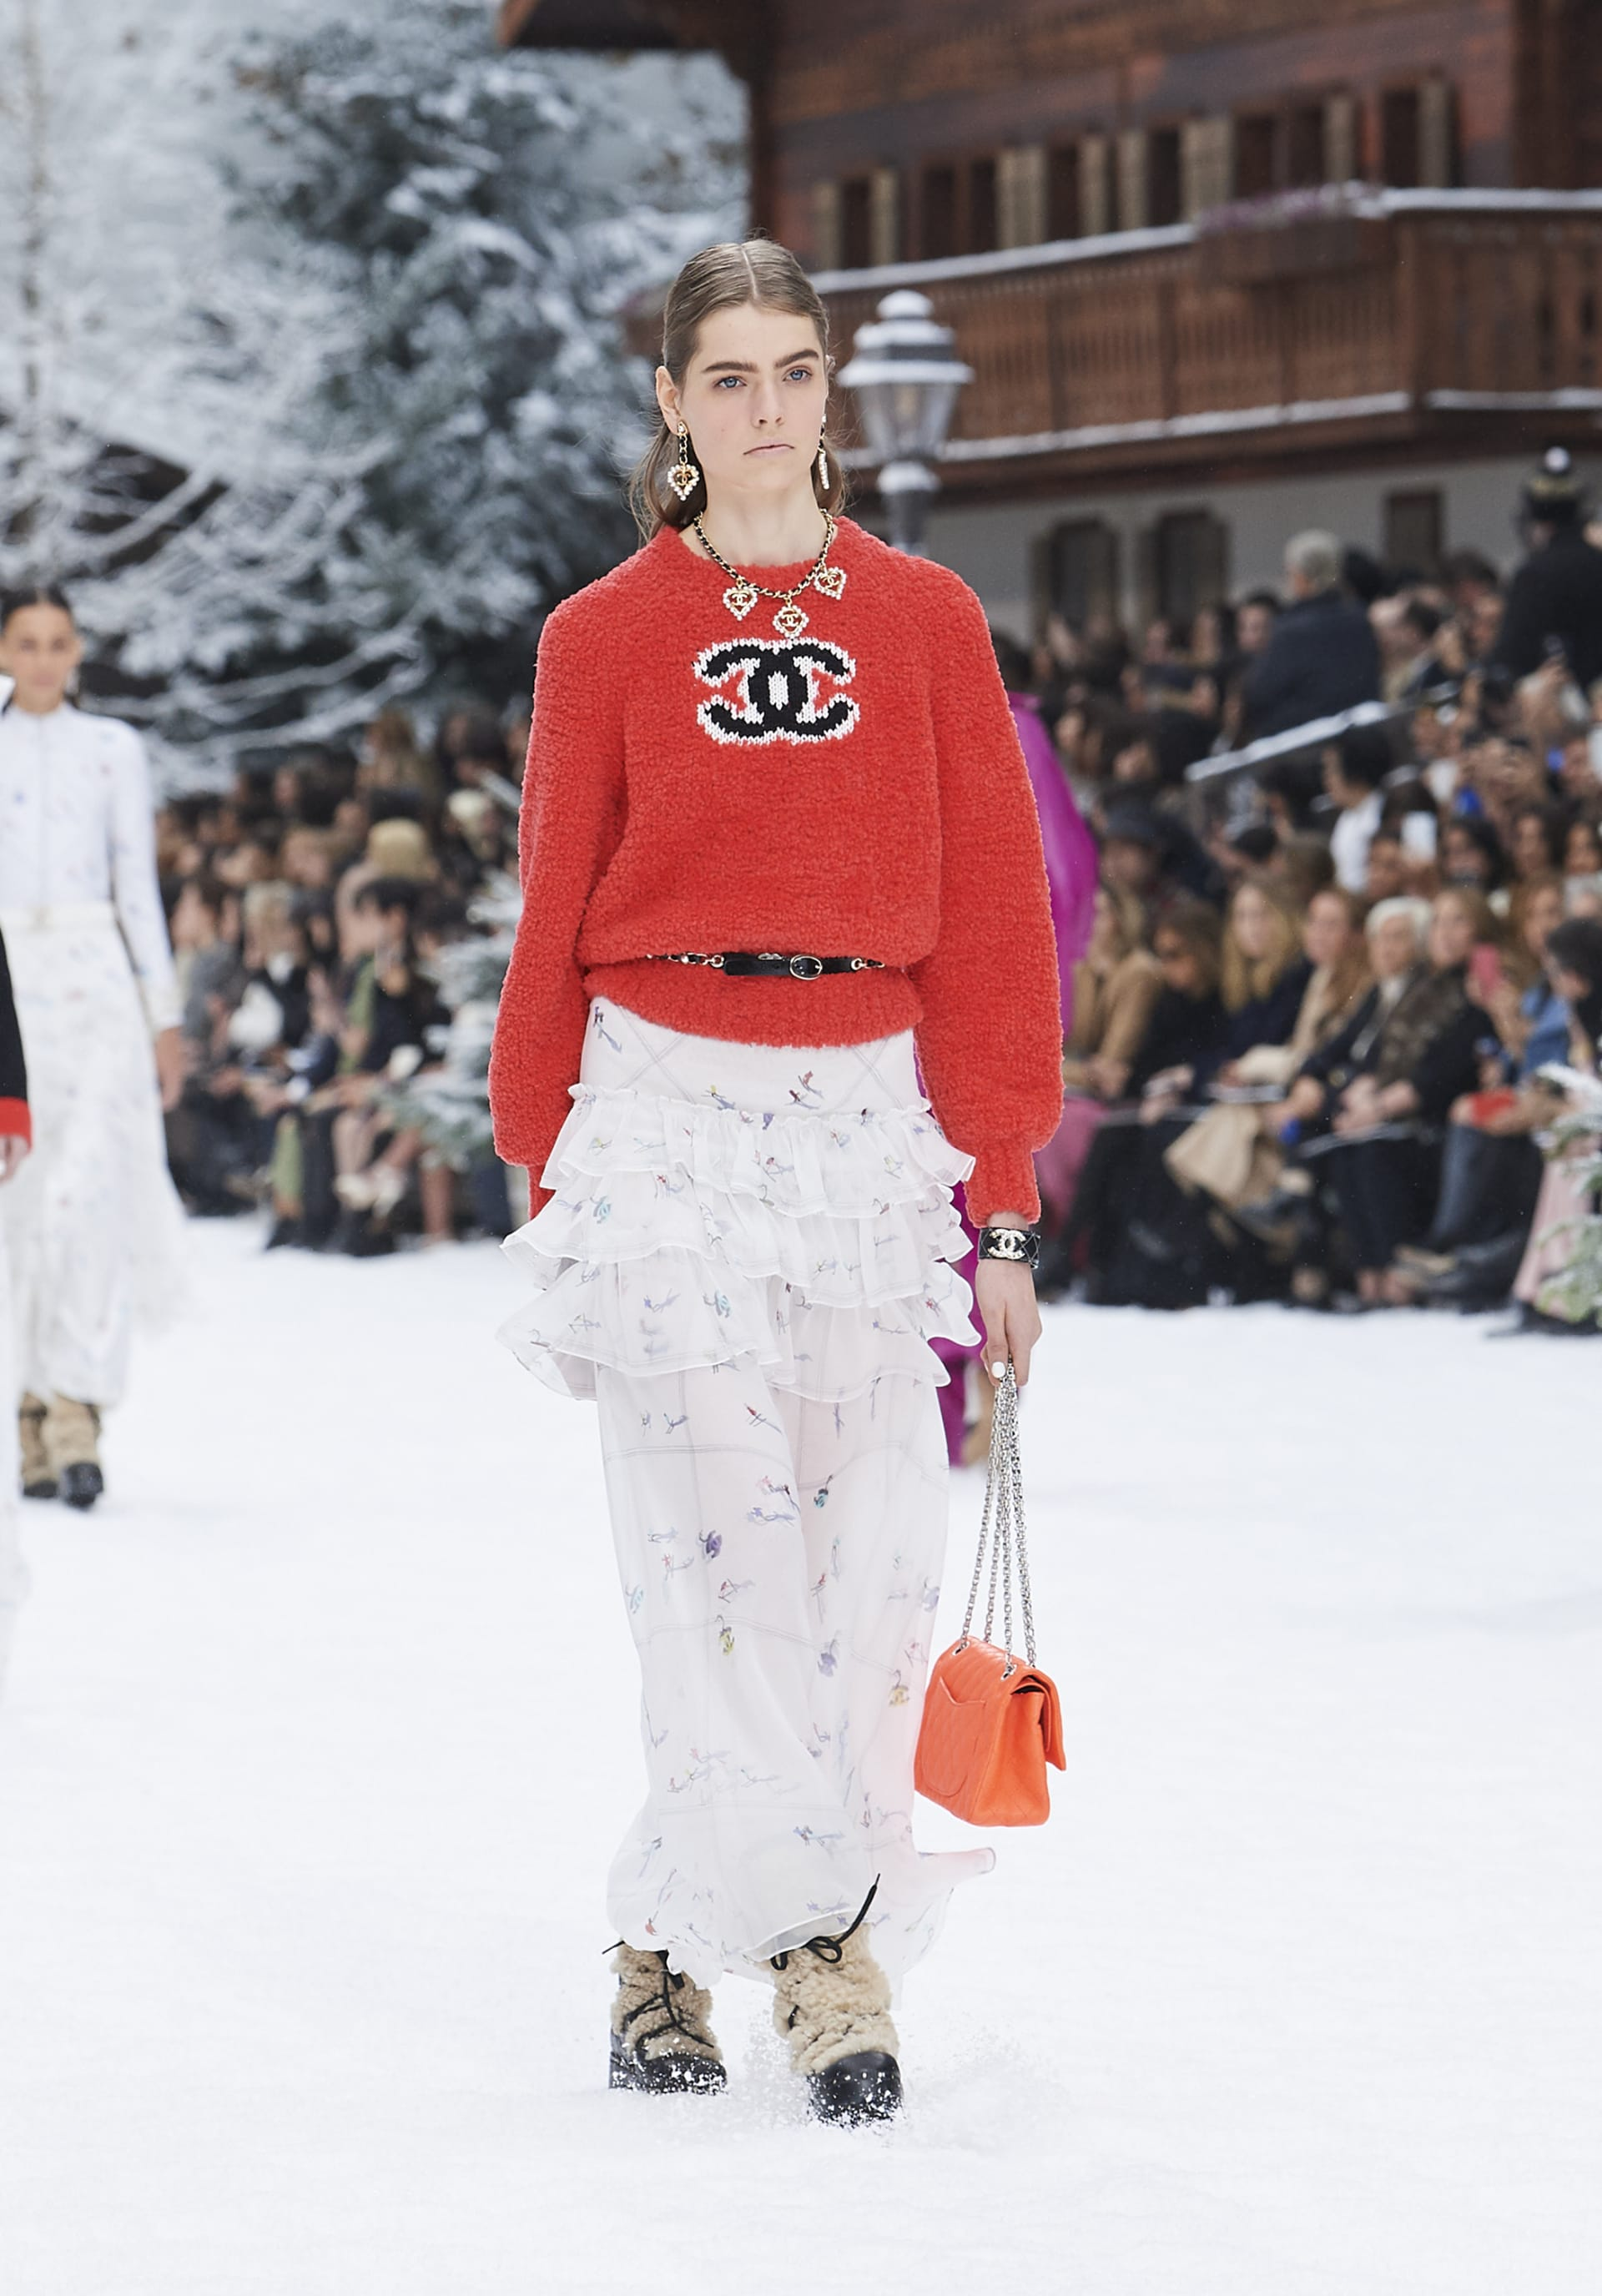 View 1 - Look 48 - Fall-Winter 2019/20